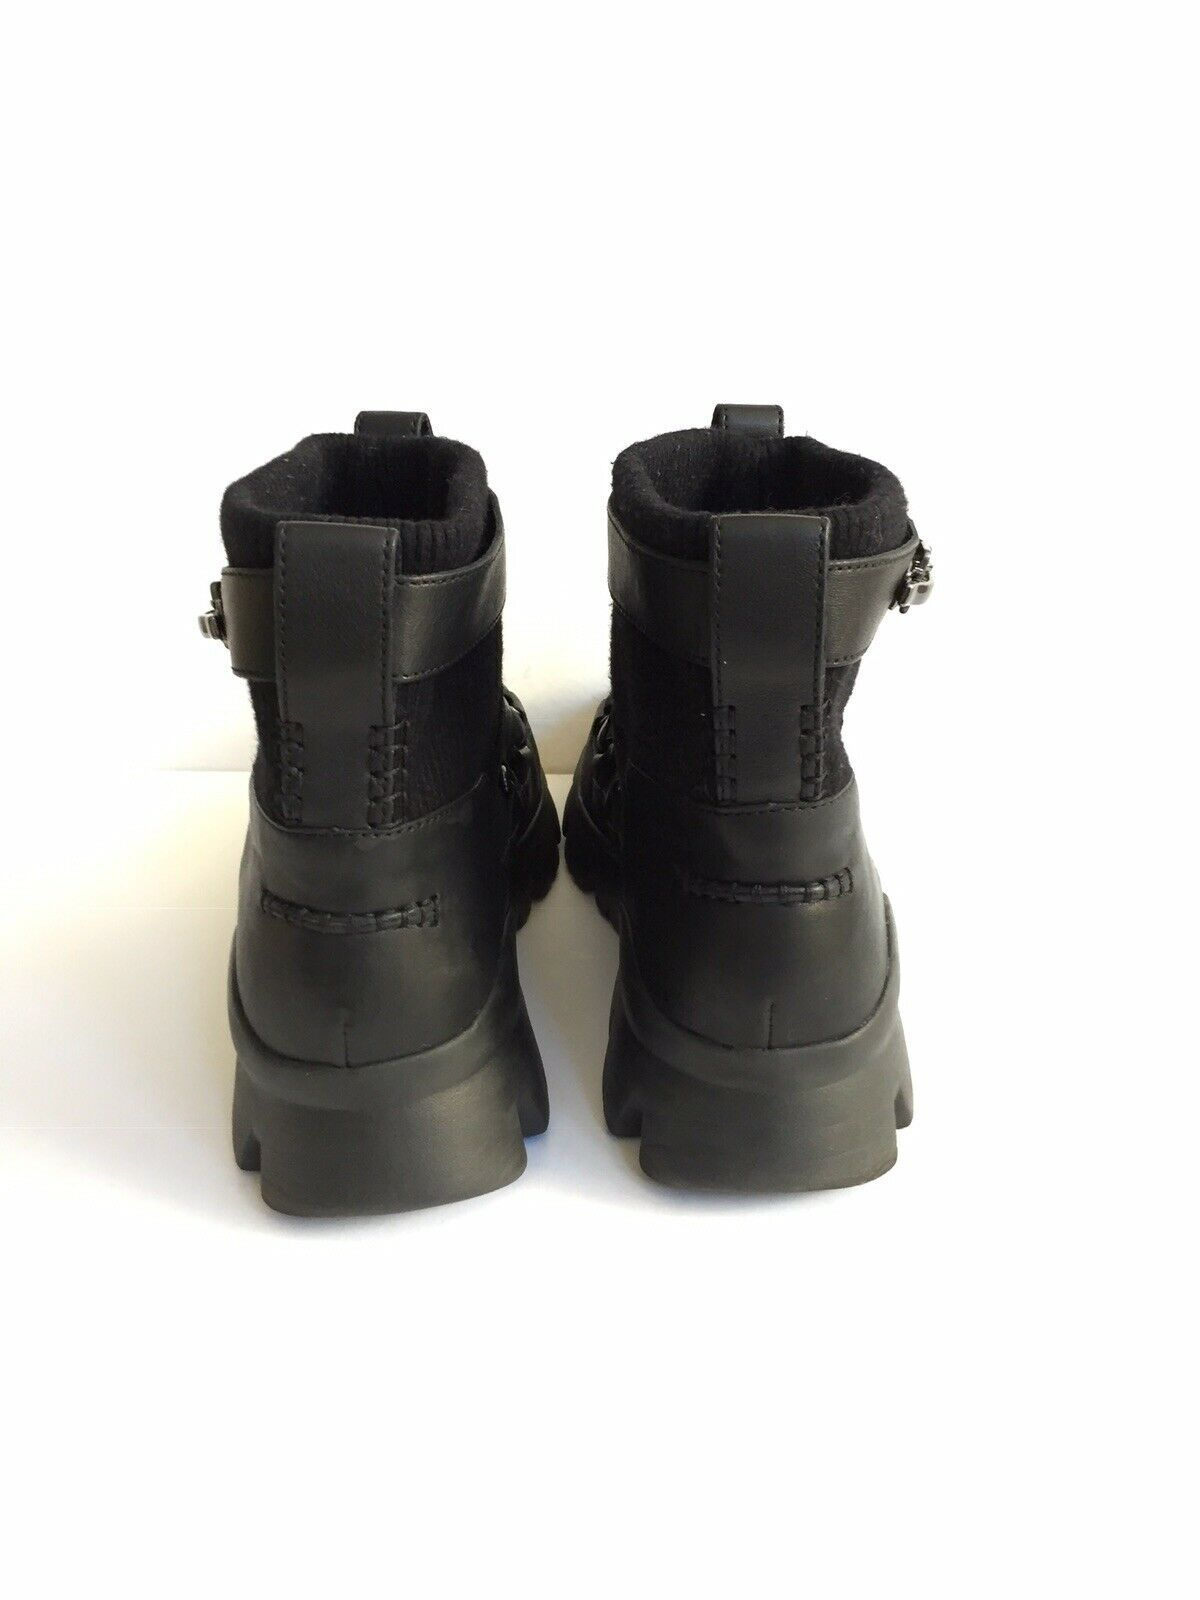 UGG PUFF MOMMA LAKES & LIGHTS BLACK WINTER FUR SNEAKERS US 11 / EU 42 / UK 9 image 4